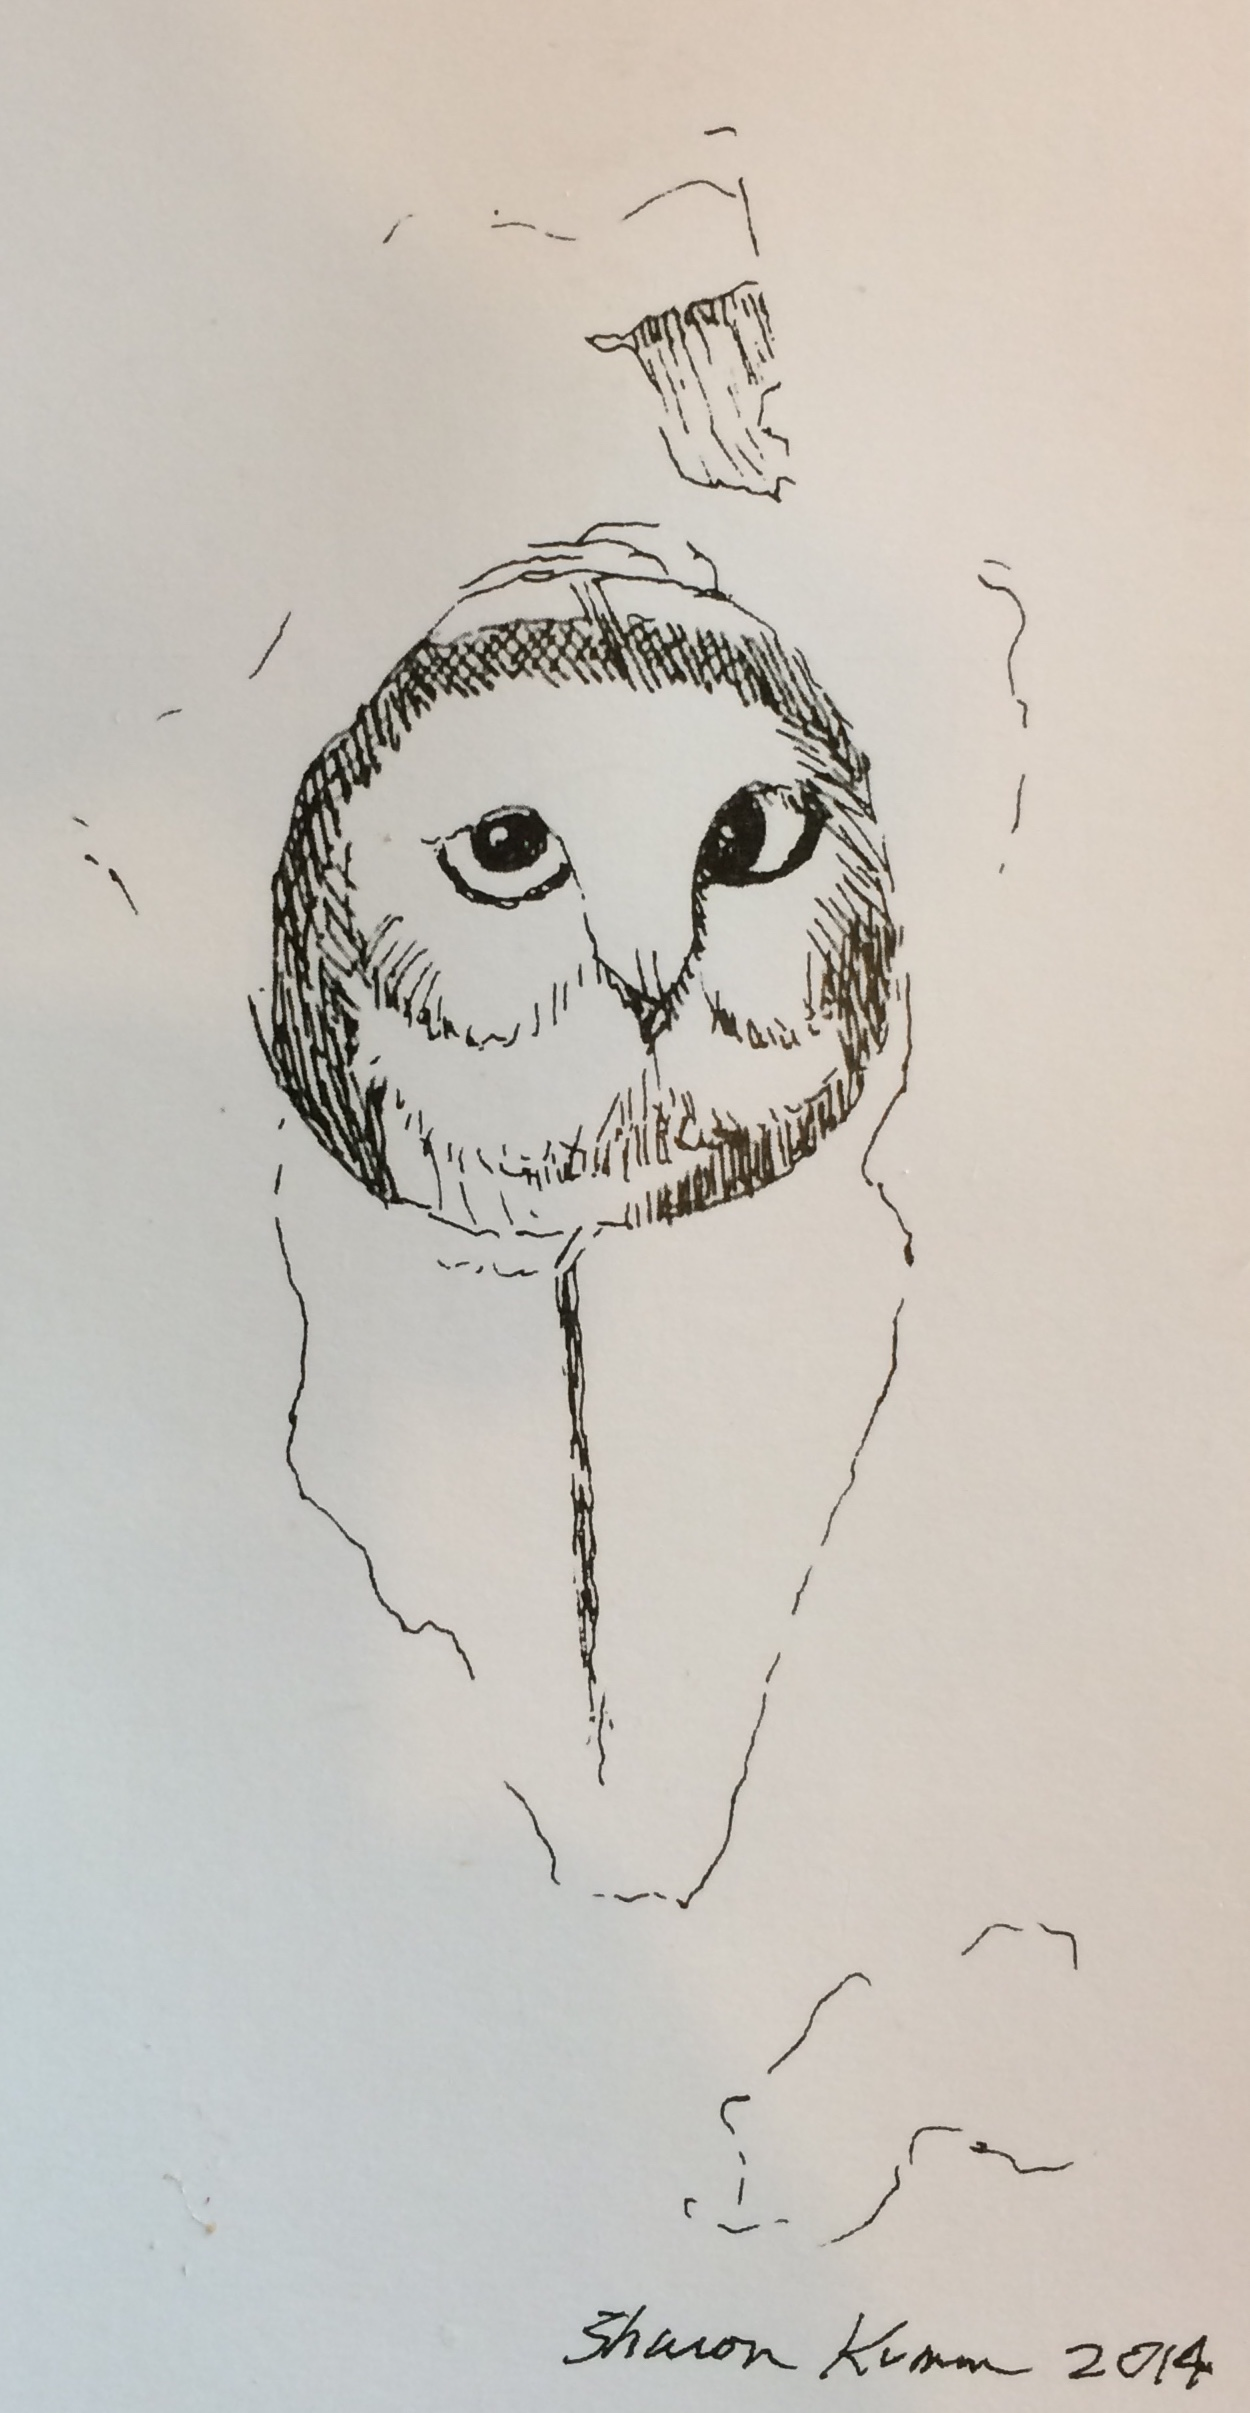 Owl, Pen and Ink Sketch, Sharon Kumm 2014